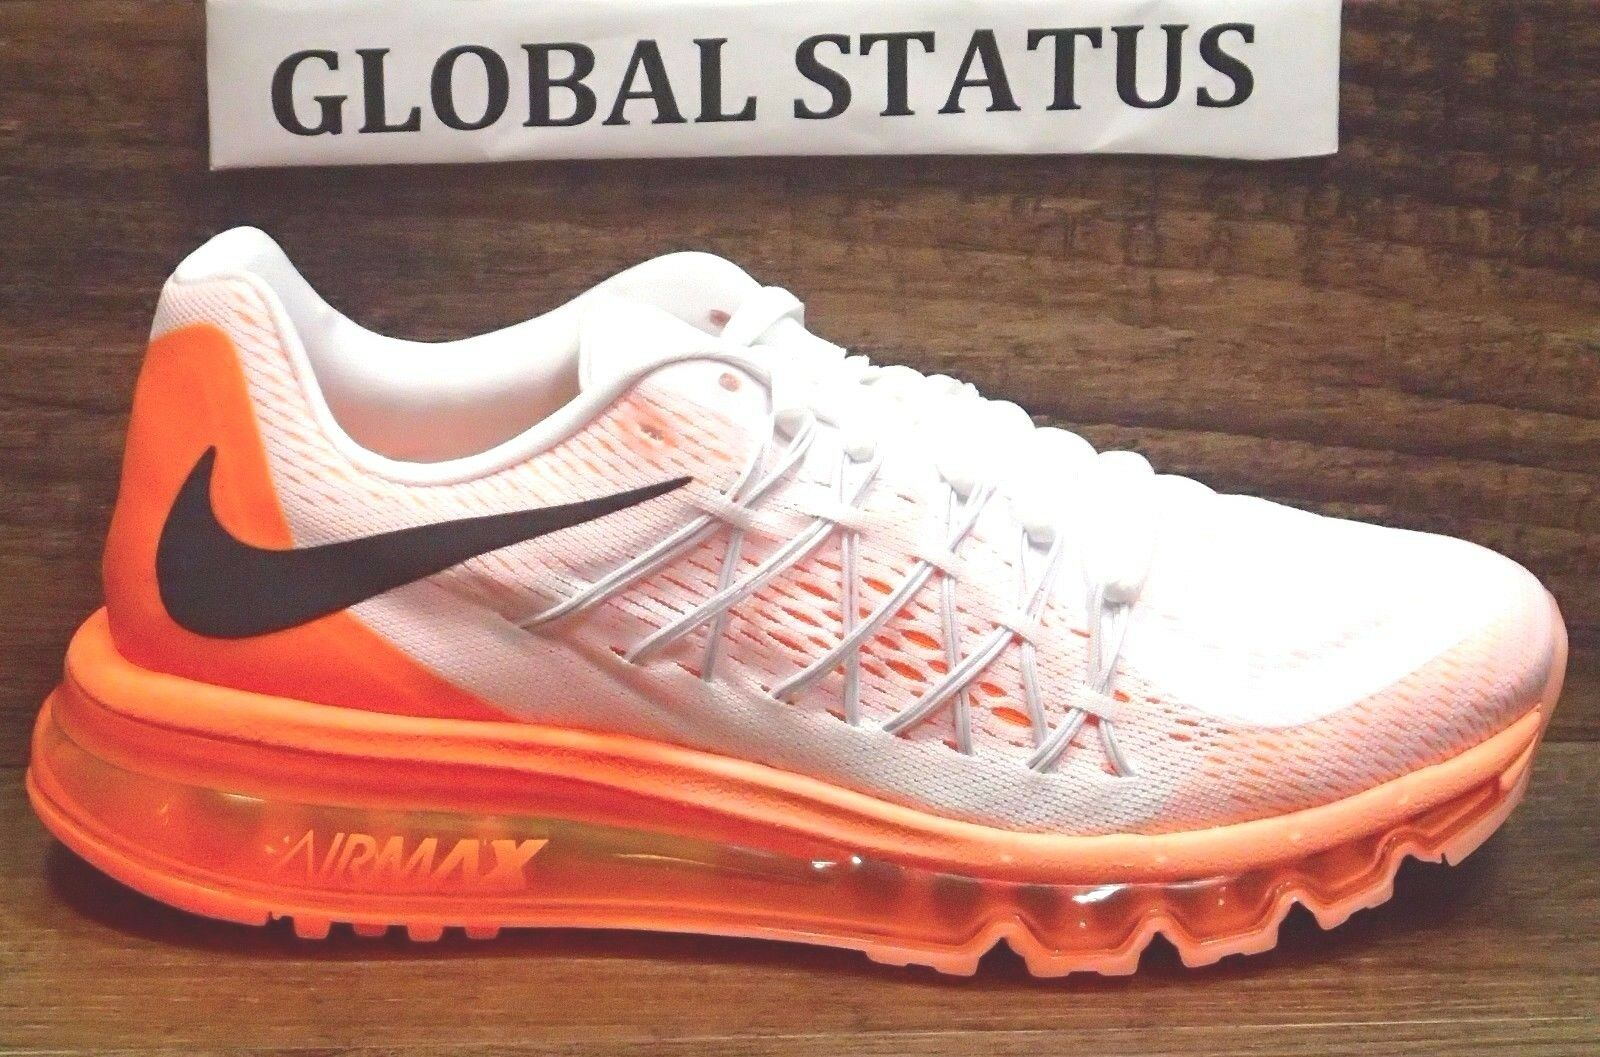 NIKE WOMENS AIR MAX 2015 WHITE BRIGHT CITRUS RUNNING SHOES 698903 102 SIZE 8